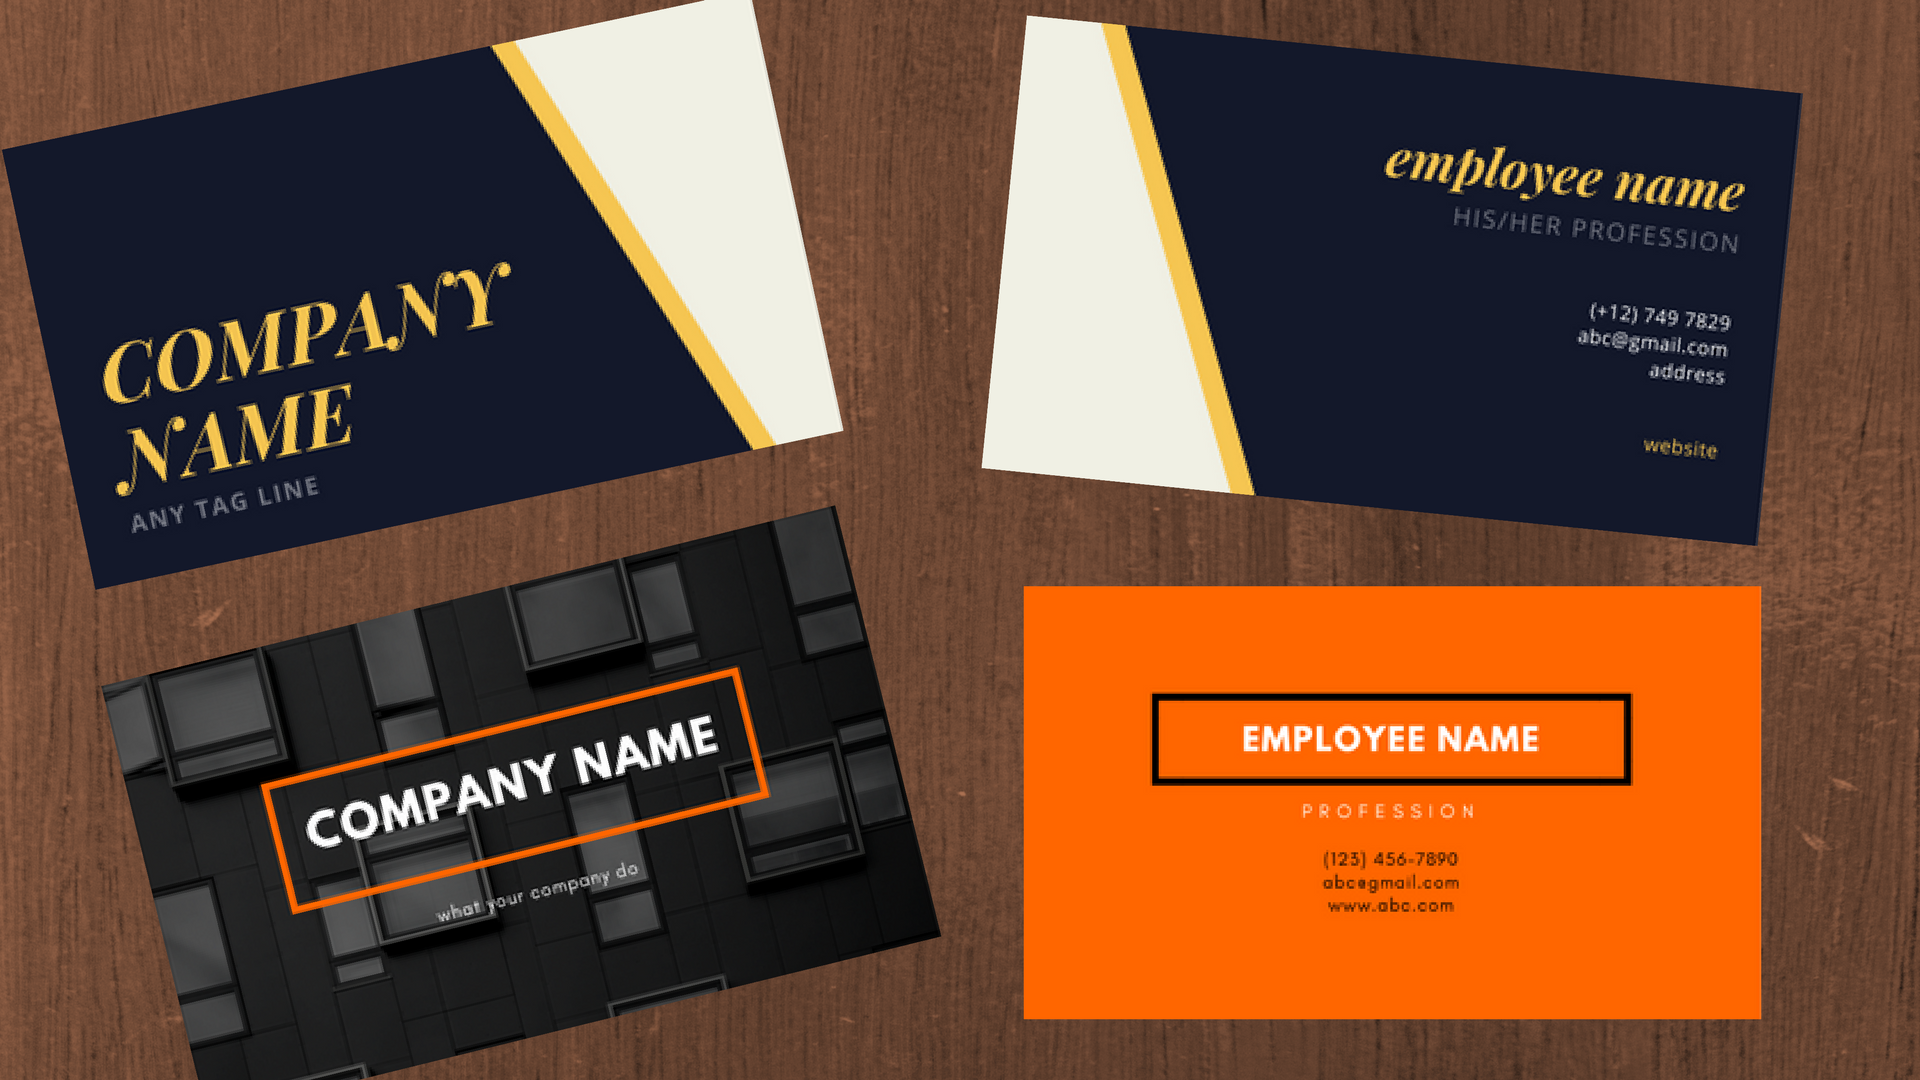 3 simple and modern professional business card for $5 seoclerks